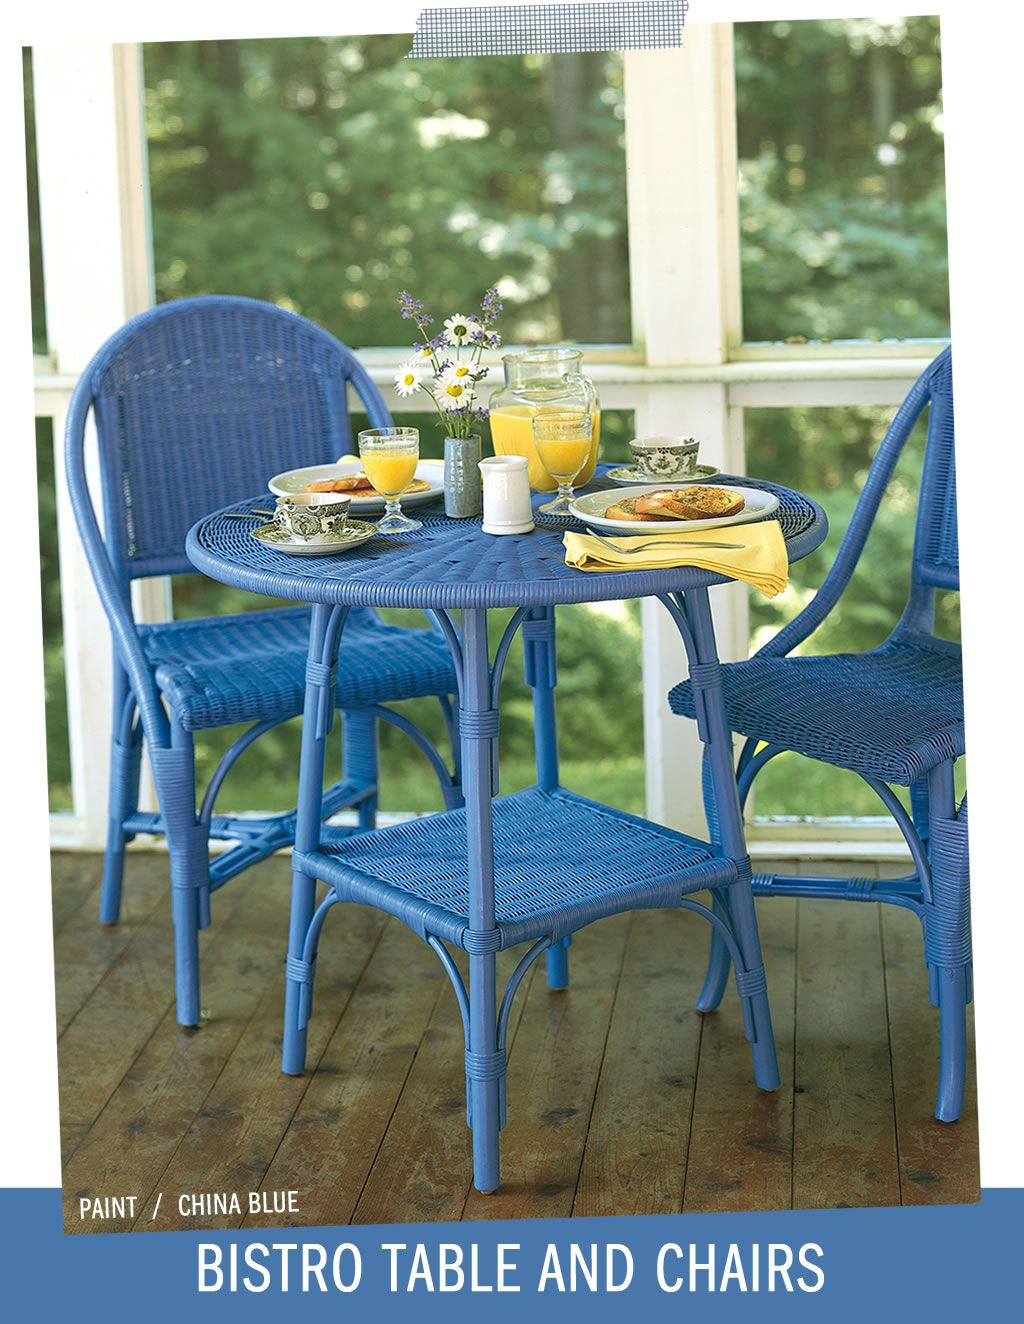 Wicker By Maine Cottage | Bistro Table U0026 Chairs In China Blue  #wickerfurniture